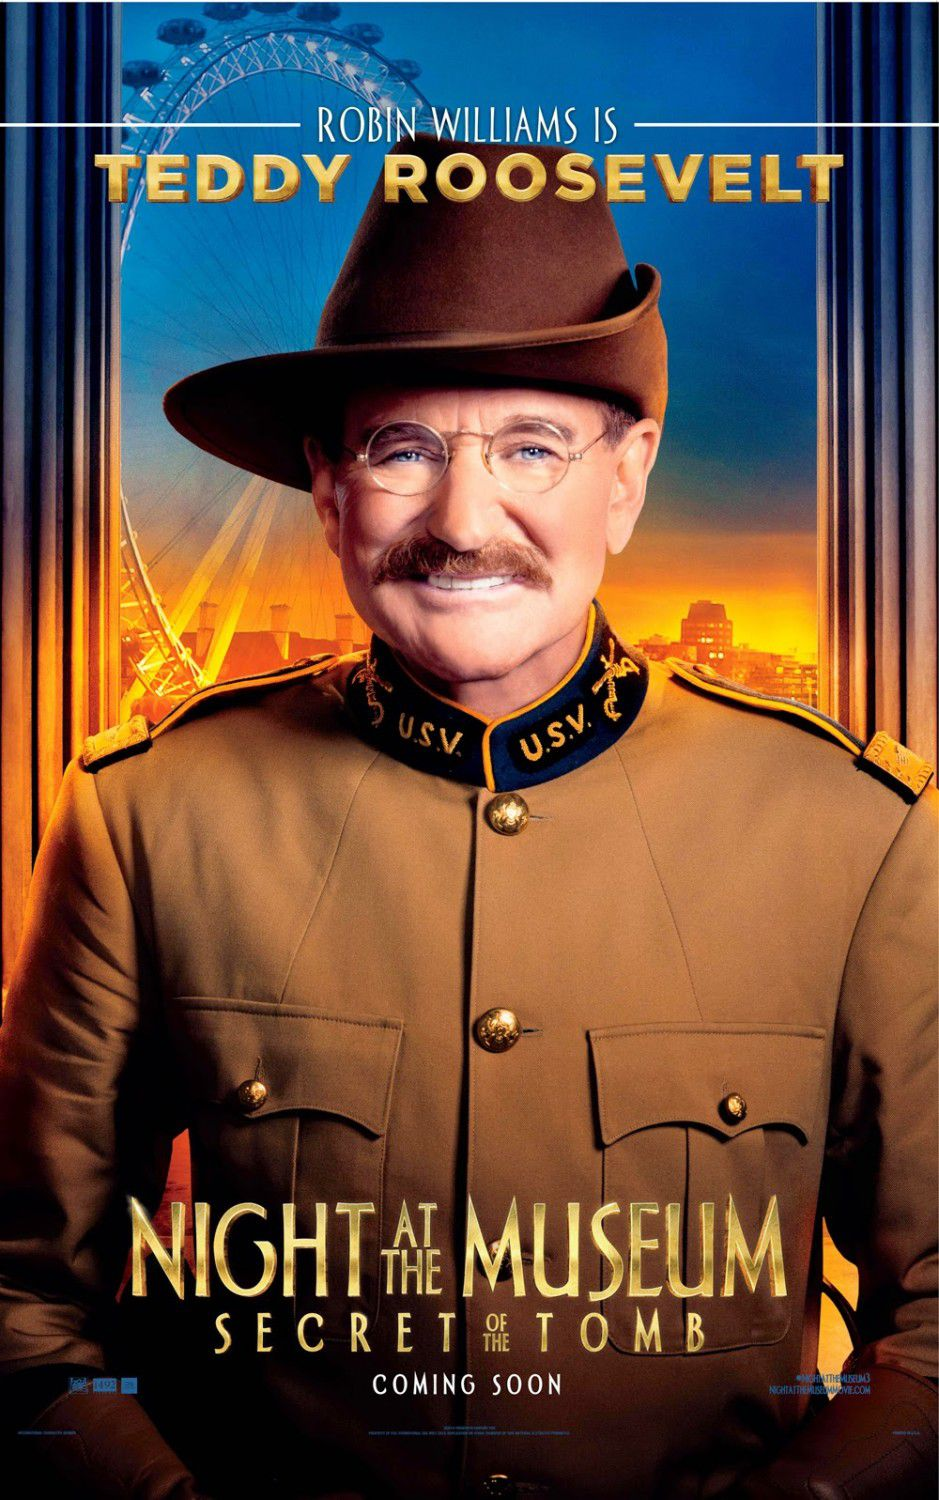 Una Notte al Museo 3 - Night at the Museum 3 - Secret of the Tomb - poster - Teddy Roosevelt (Robin Williams)